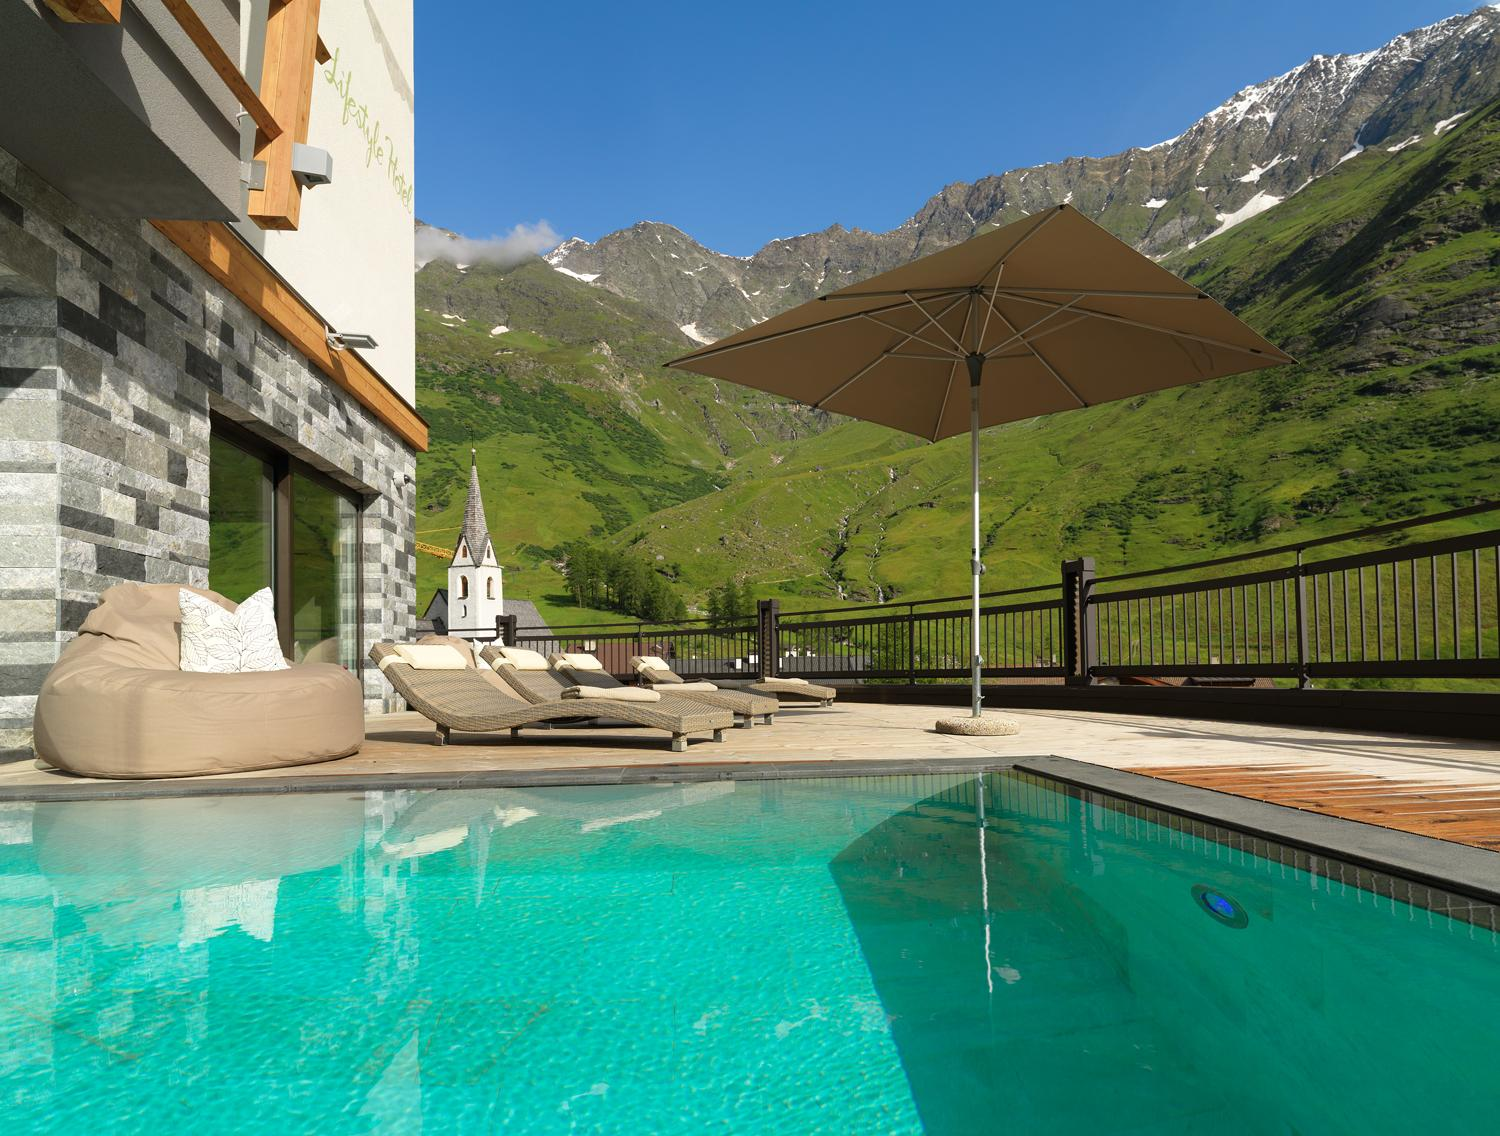 Hotel Pfeldererhof in Plan, Passeiertal, South Tyrol